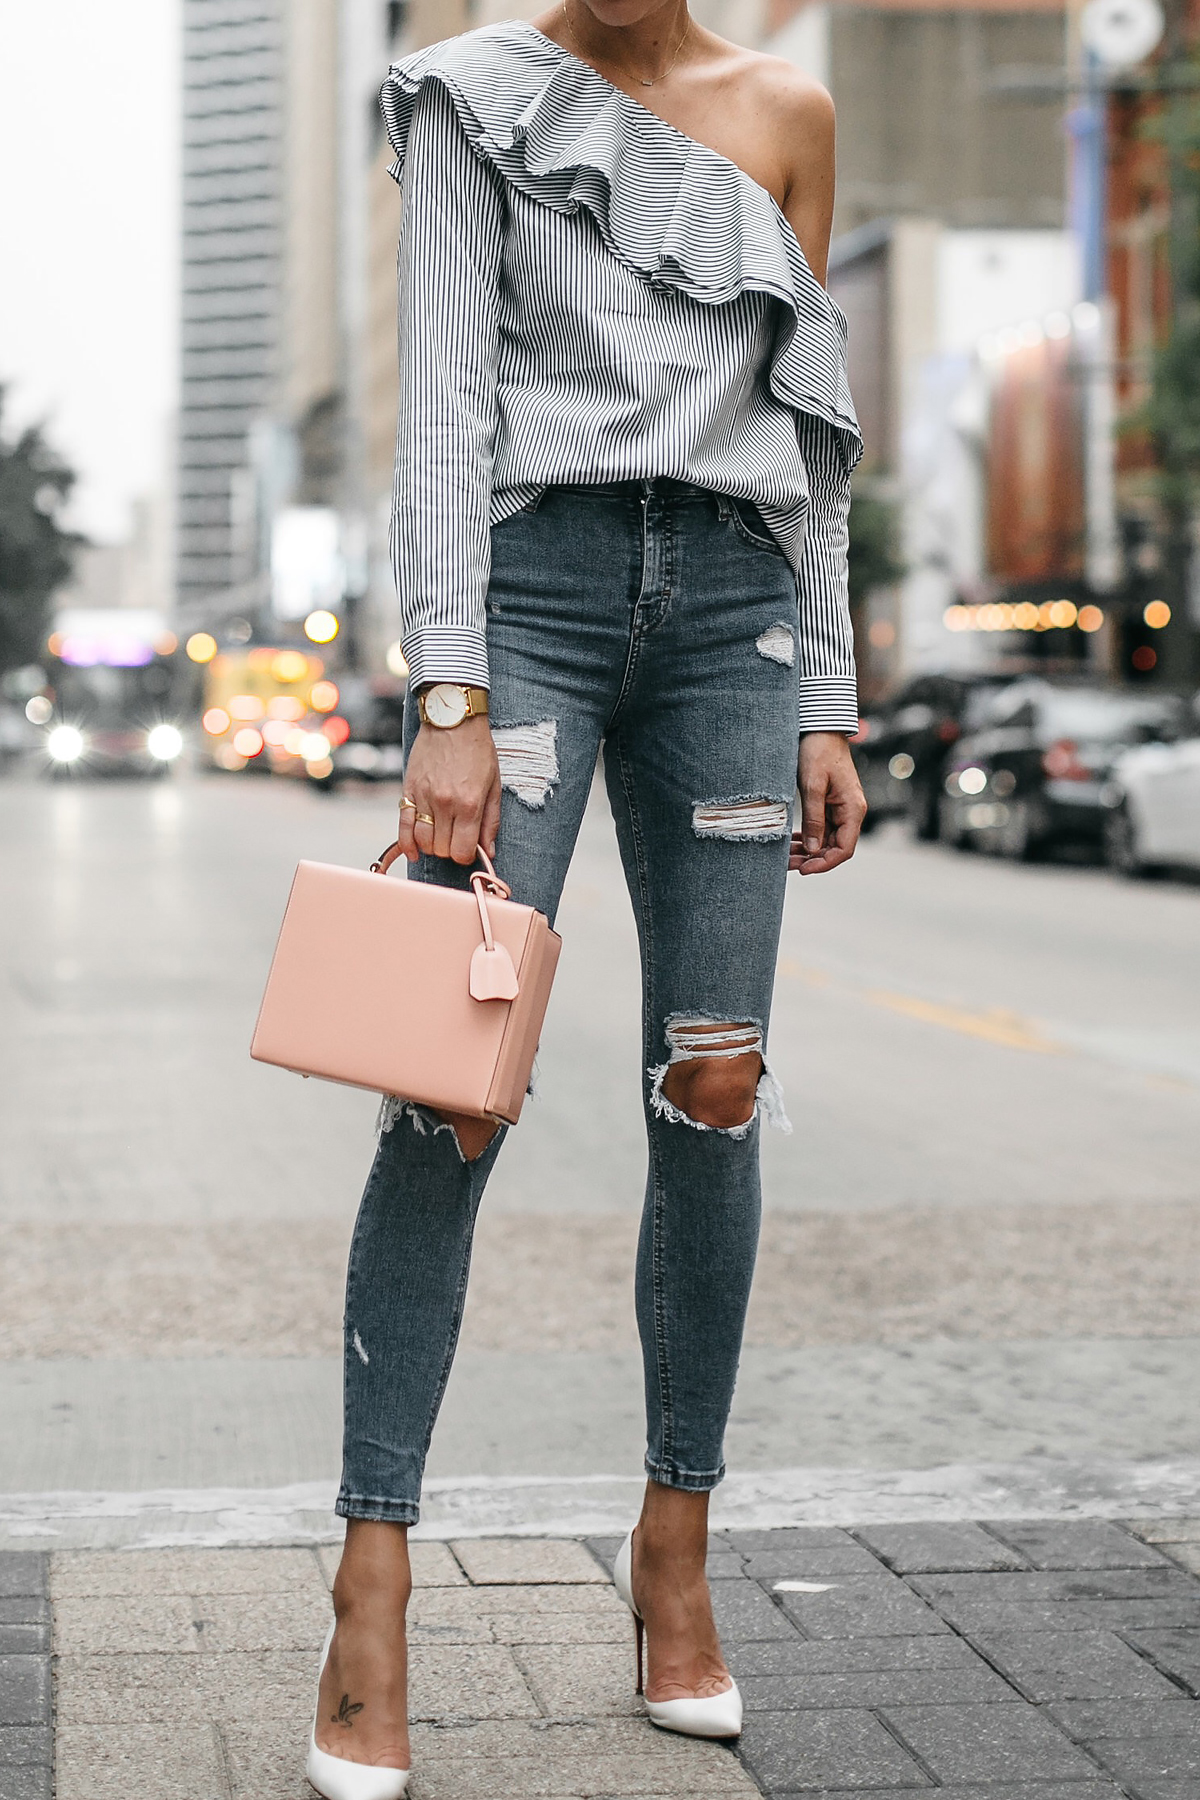 Club Monaco Striped One Shoulder Ruffle Top Denim Ripped Skinny Jeans Mark Cross Saffiano Pink Handbag Christian Louboutin White Pumps Fashion Jackson Dallas Blogger Fashion Blogger Street Style